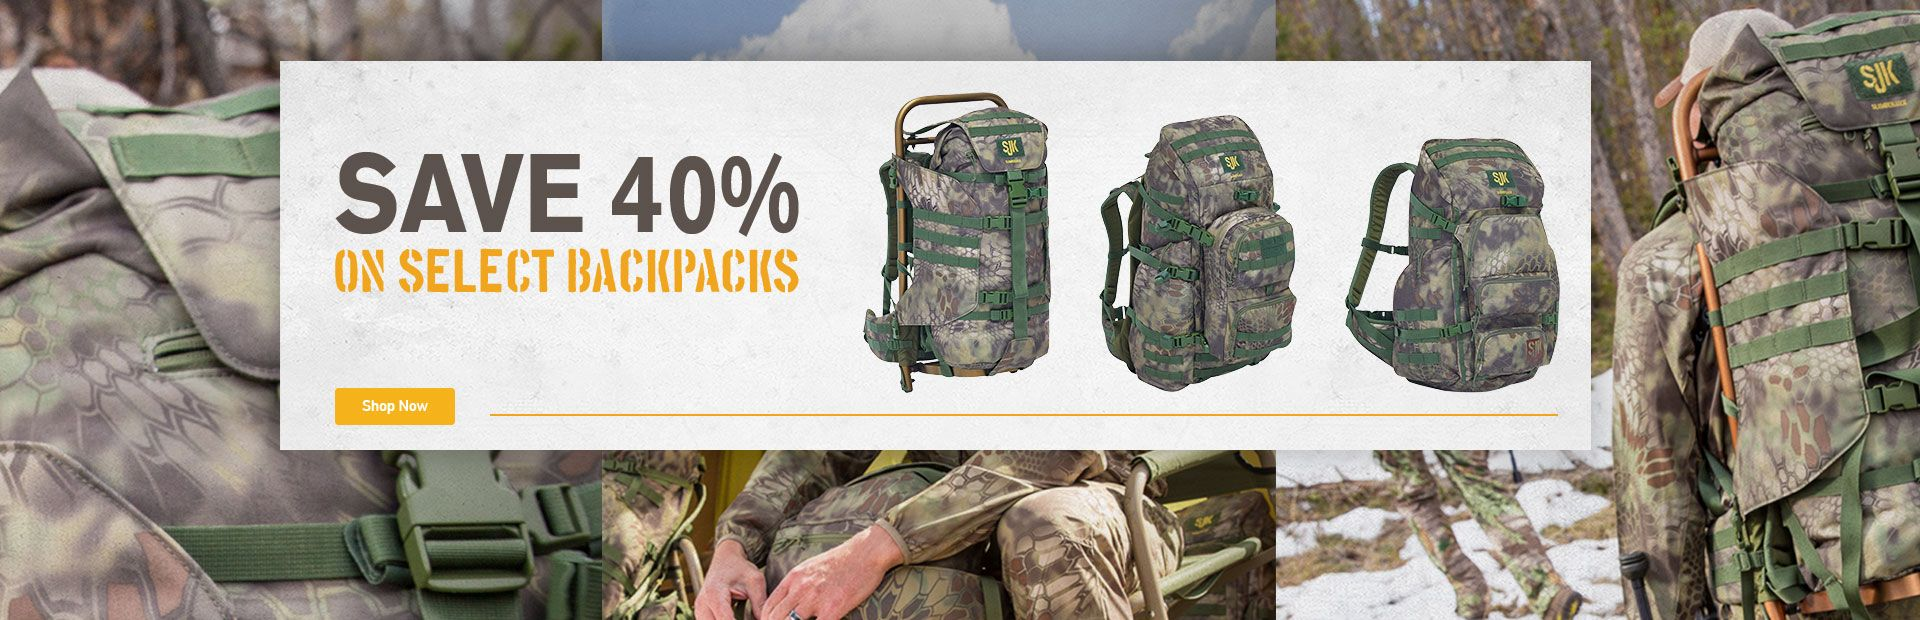 Save 40% on Select Backpacks!